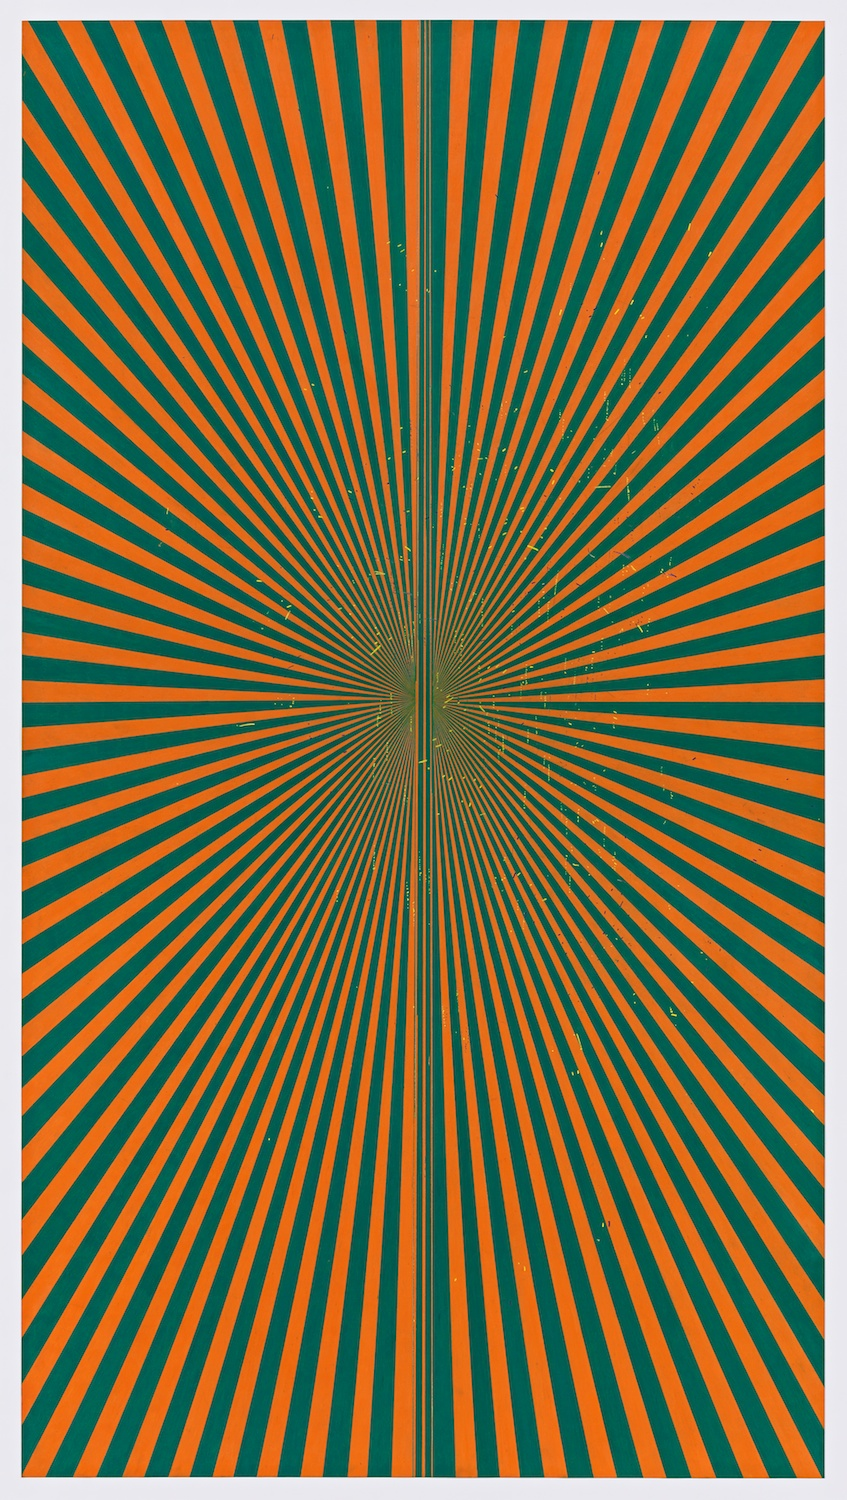 Mark Grotjahn  Untitled (Orange and Grass Green Butterfly 45.12)  2013 Color pencil on paper 76h x 42w in MG45.12